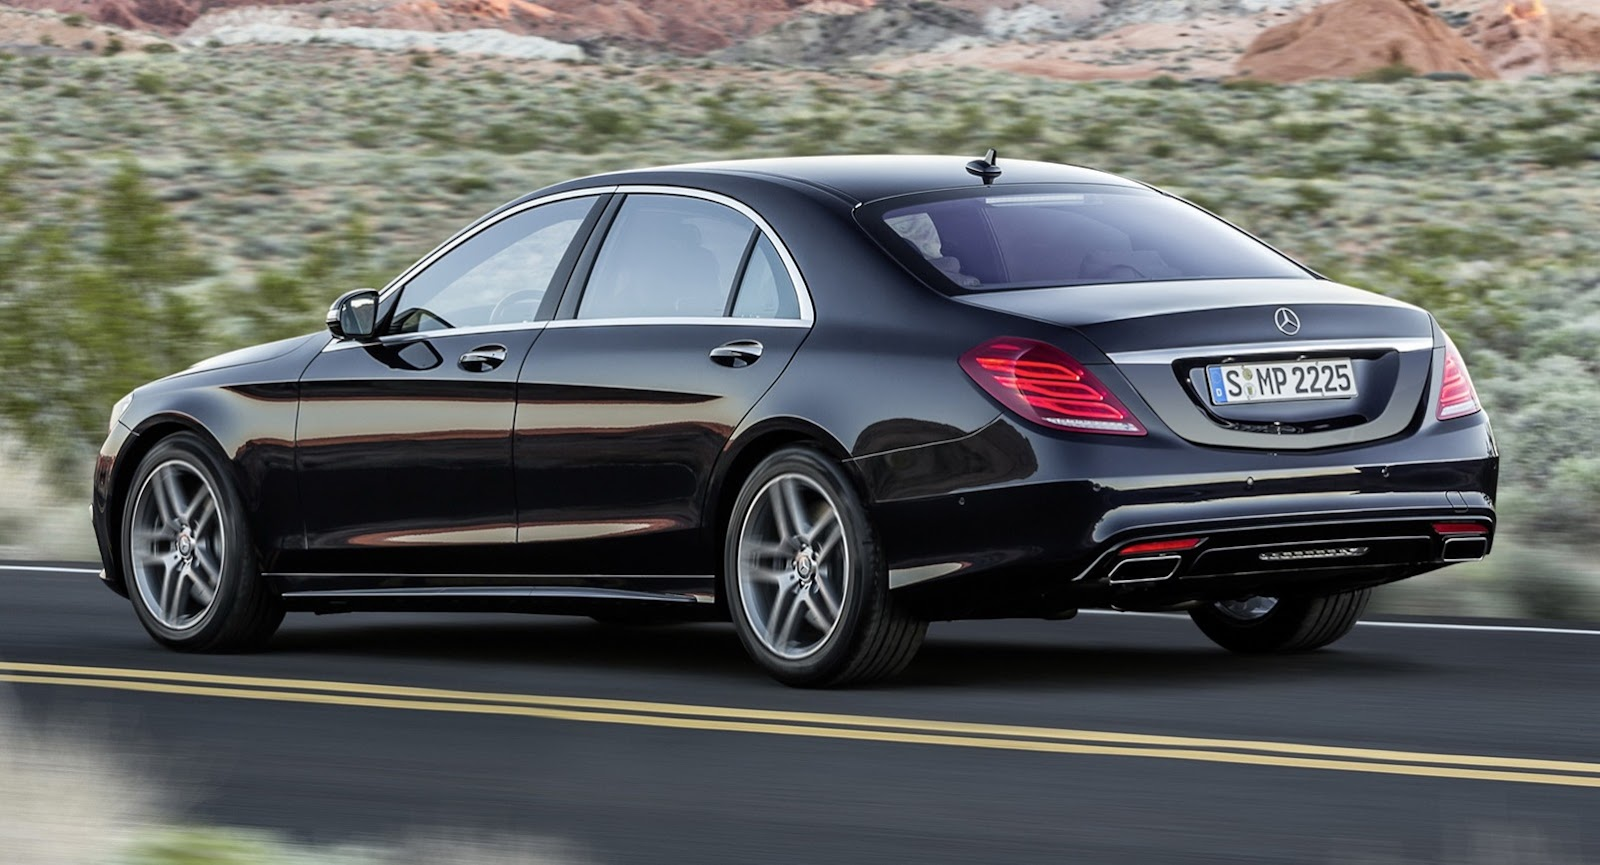 We Compare The W222 Mercedes Benz S Class Side By Side To